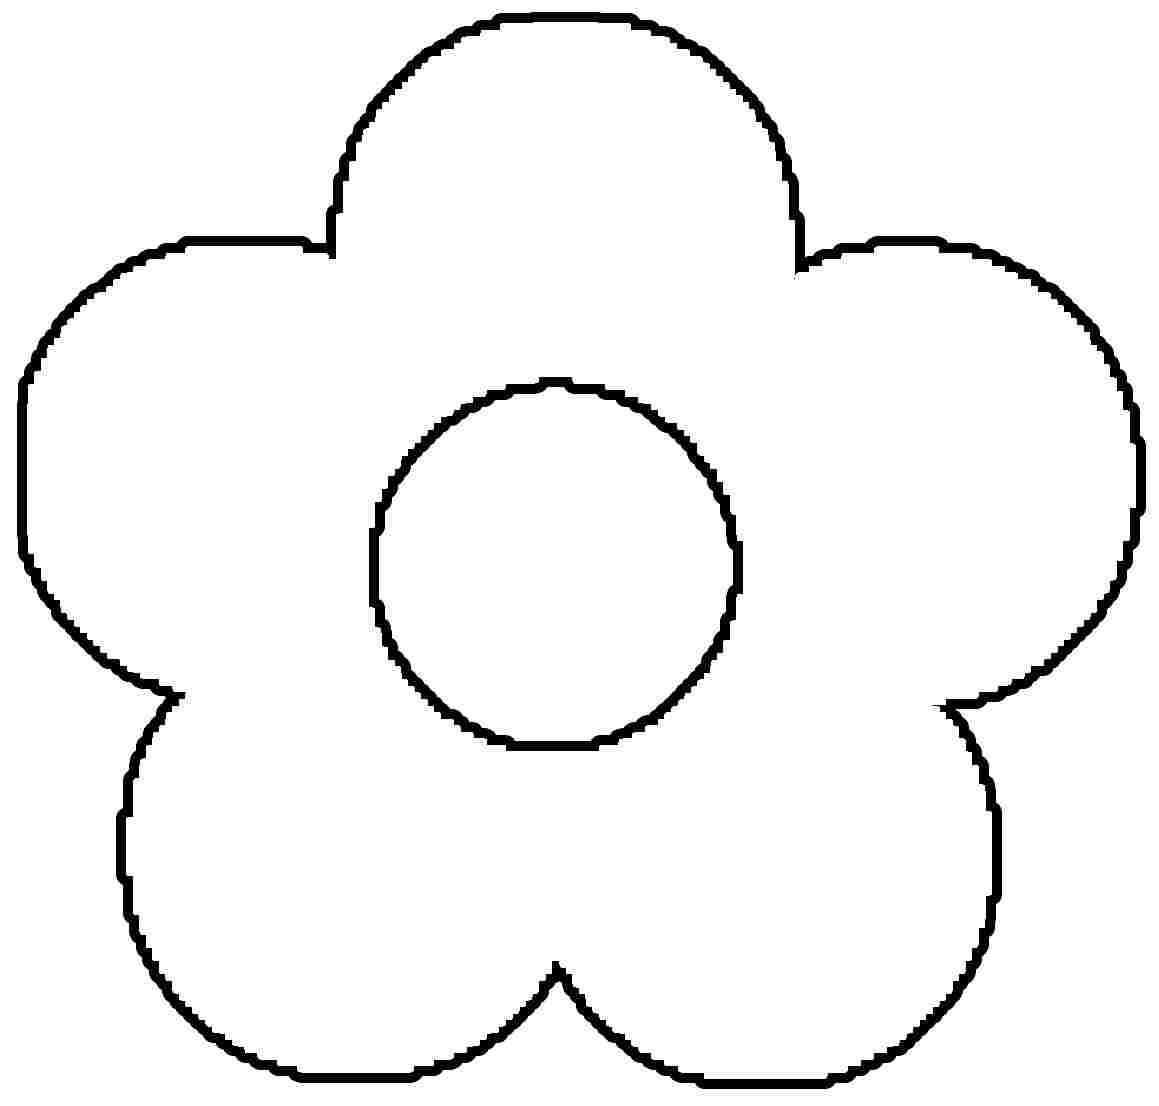 free printable preschool flower coloring pages very simple flower coloring page for preschool simple flower pages free preschool coloring printable